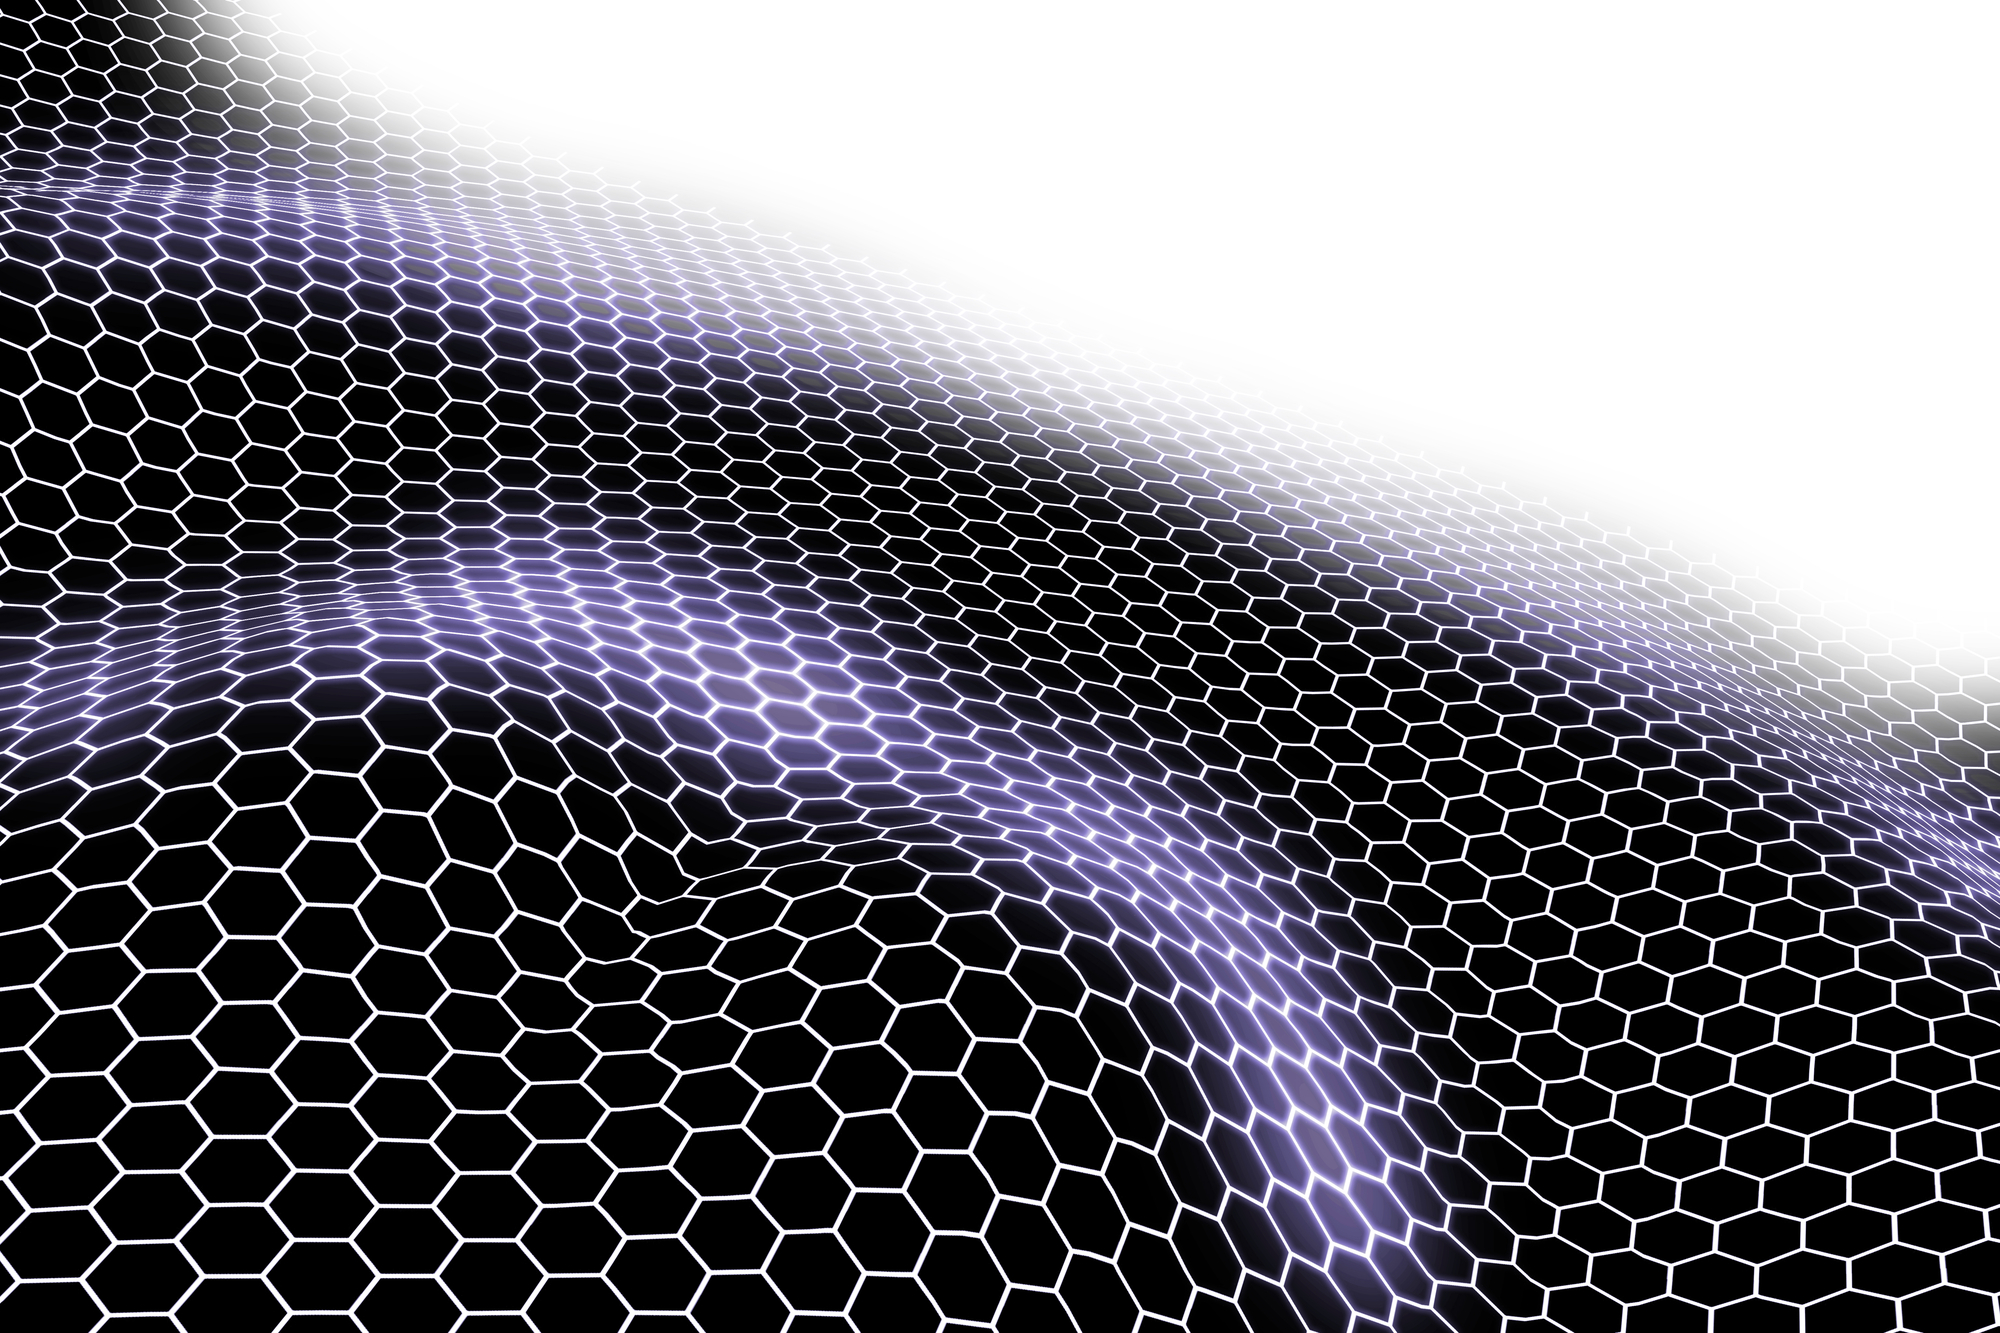 Graphene nanoribbons could serve a variety of purposes, and a new way to produce then could help unleash this potential